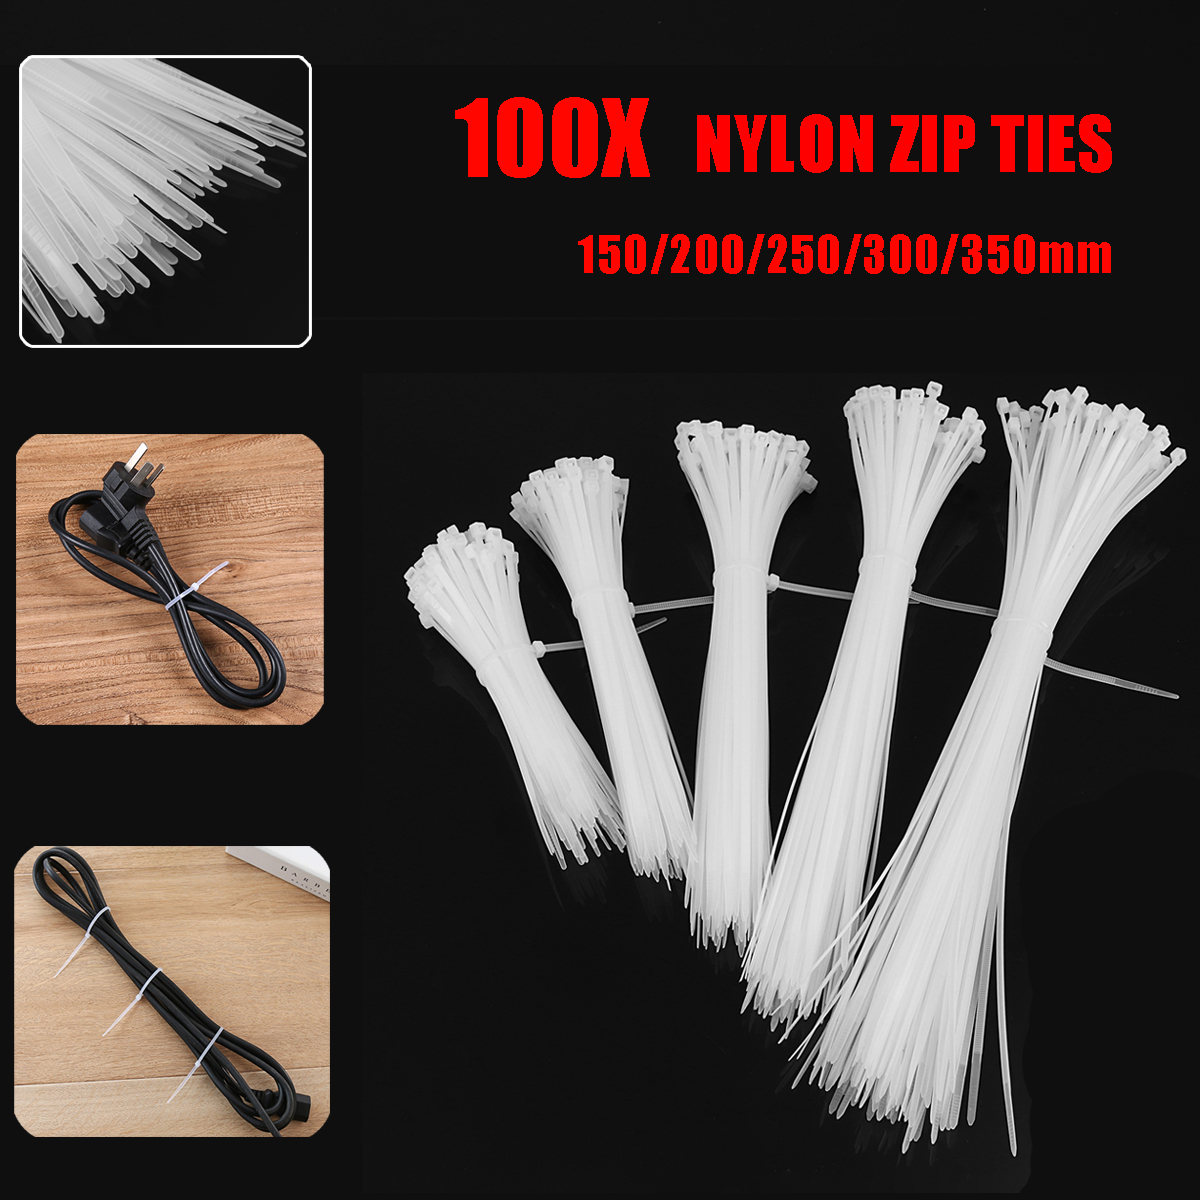 100 Pcs White Nylon Cable Zip Ties Nylon Cable Ties Wraps Zip Tie